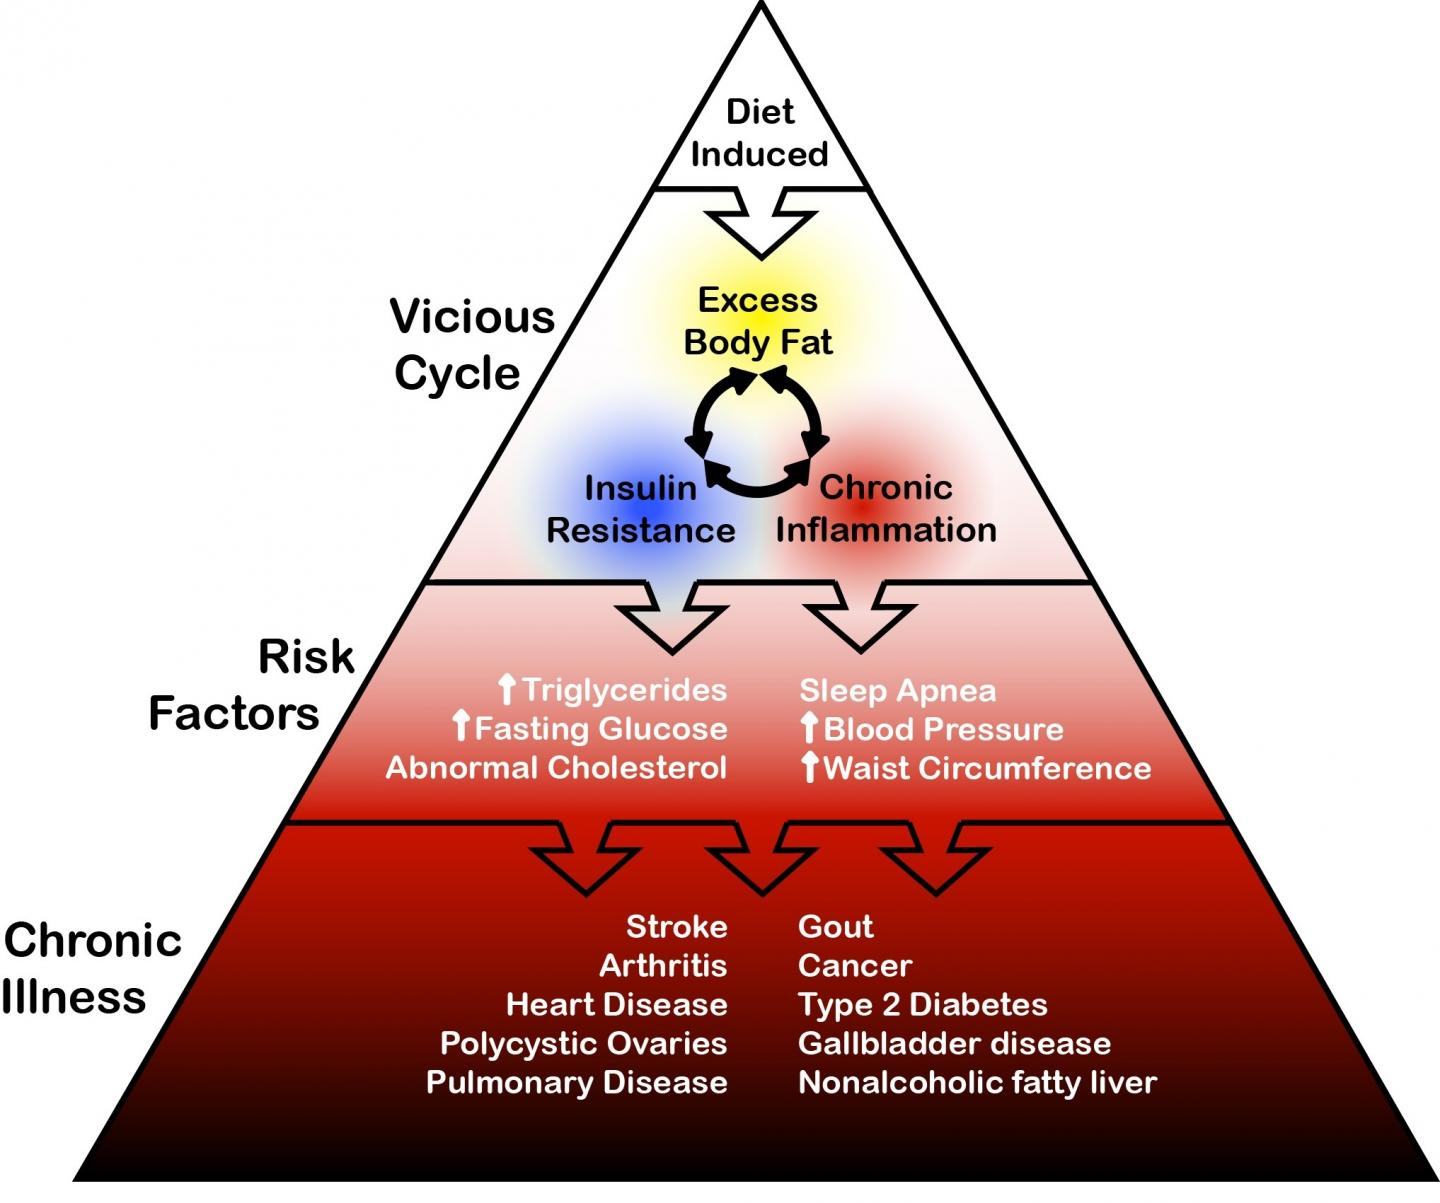 General Schematic of Relationships between Diet, Overfat, Some Risk Factors, and Chronic Illness